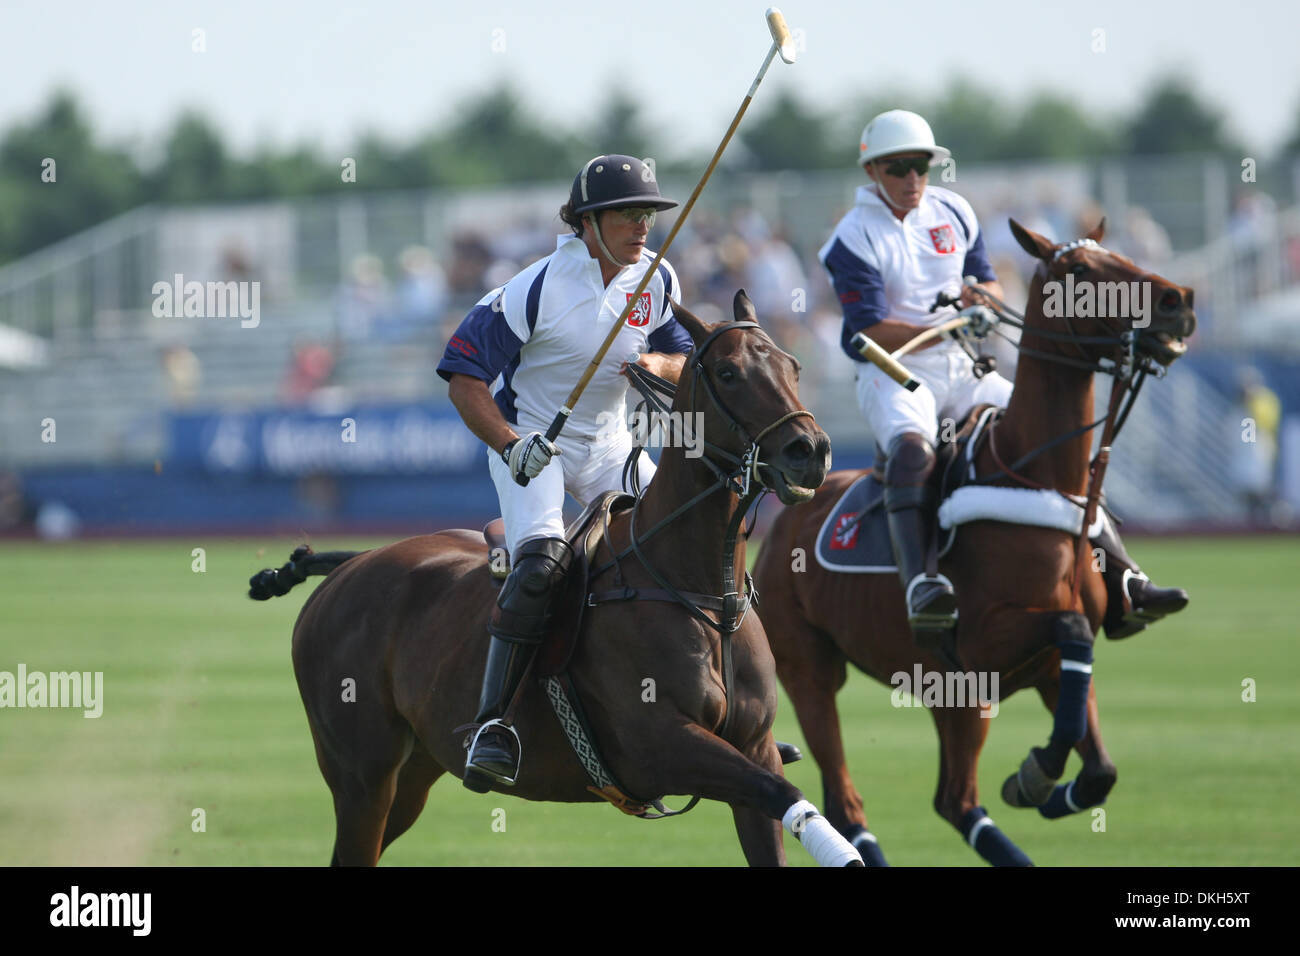 Nick Manifold and teammateAlessandro Bazzoni. Team Cinque Terre defeated Team Certified 14-10 in The opening day Stock Photo